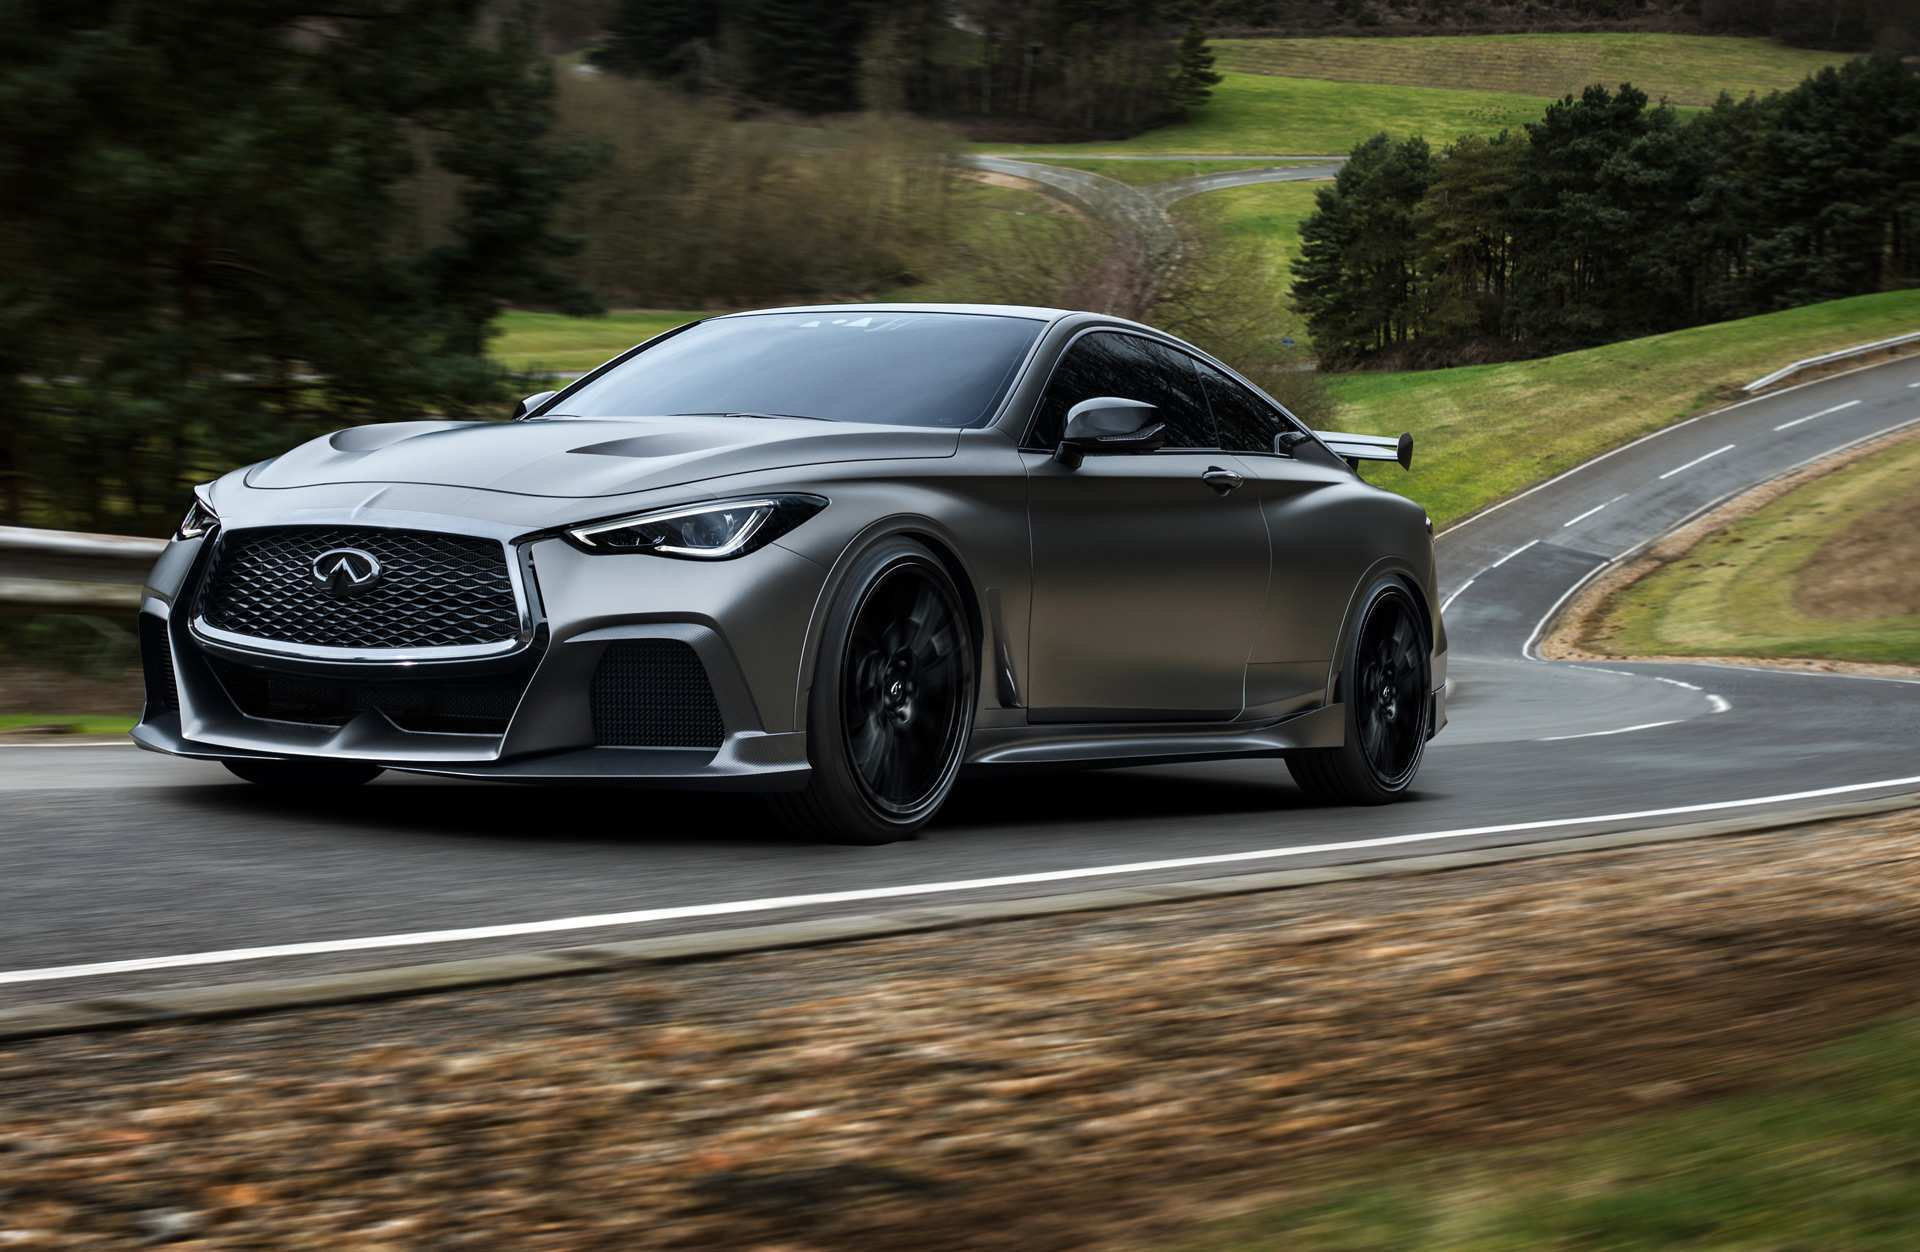 72 The Best Infiniti Cars For 2020 Concept